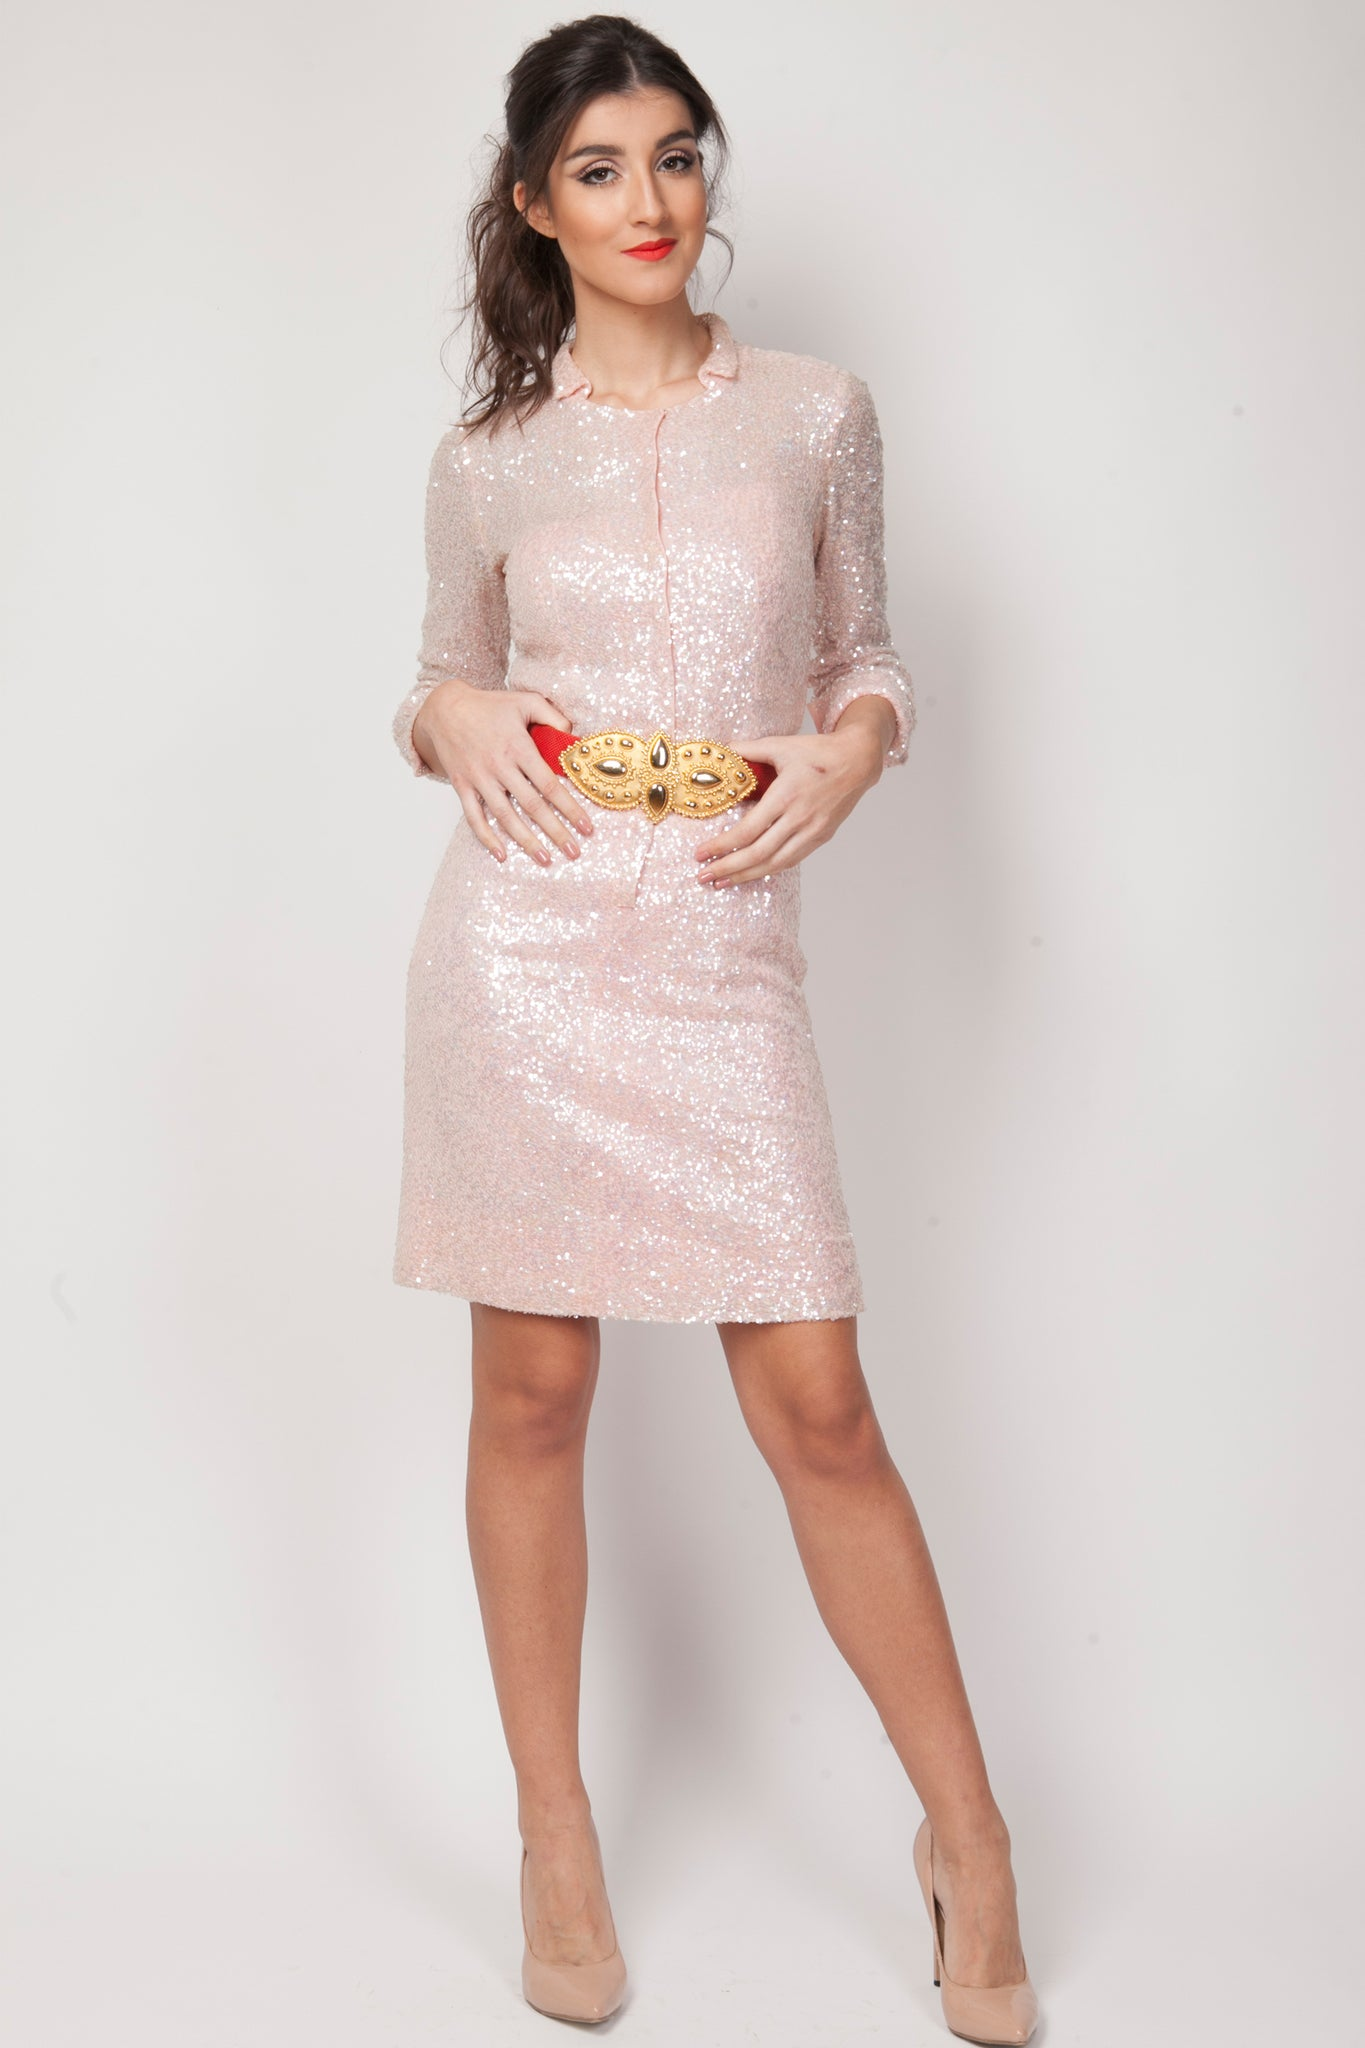 Vintage sequin dress in pink - SoLovesVintage